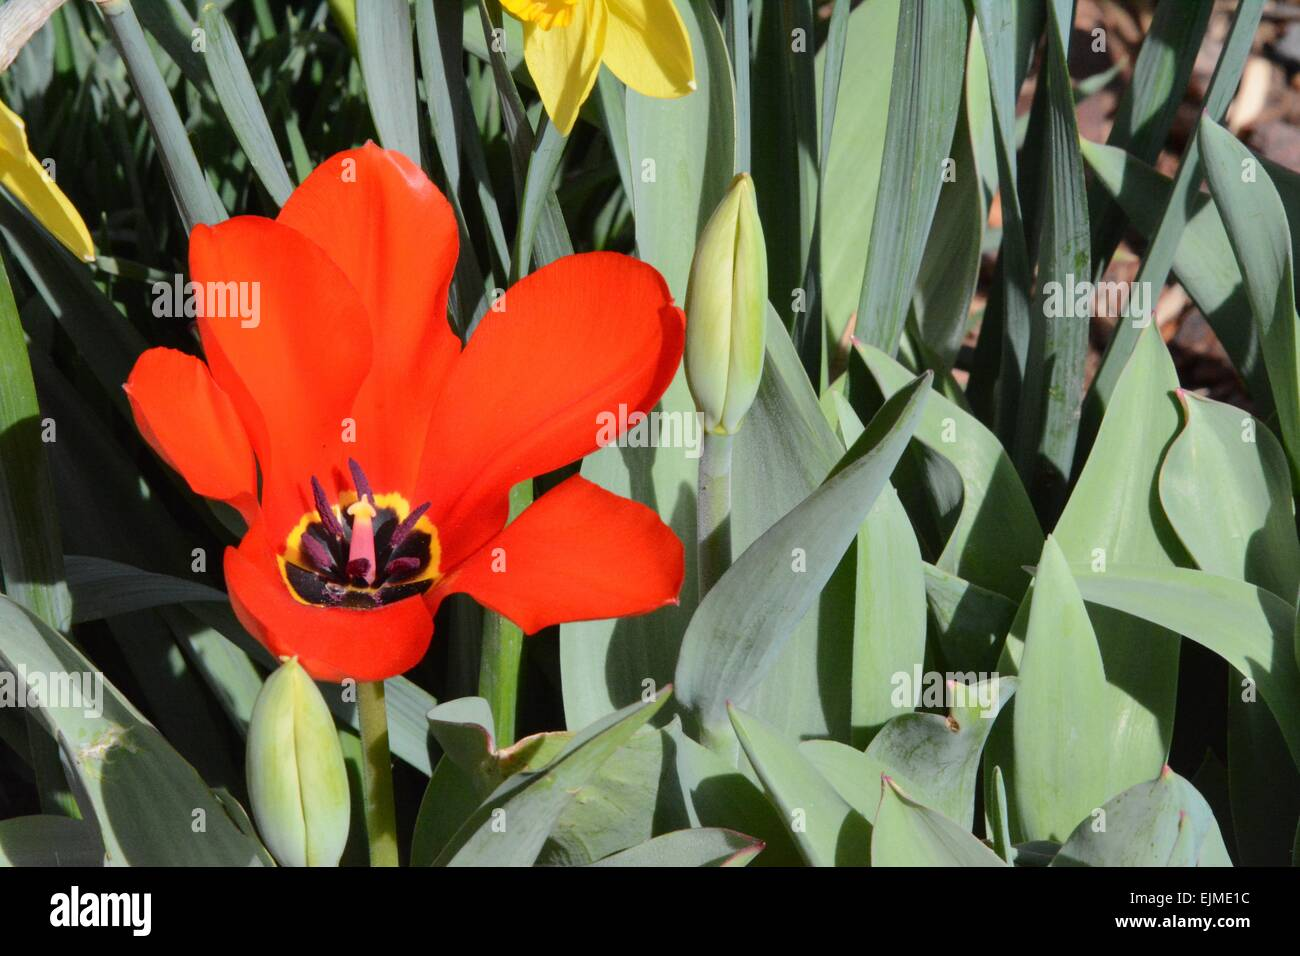 Red Tulip blossom with view of propagating organs Albuquerque, New Mexico - USA - Stock Image